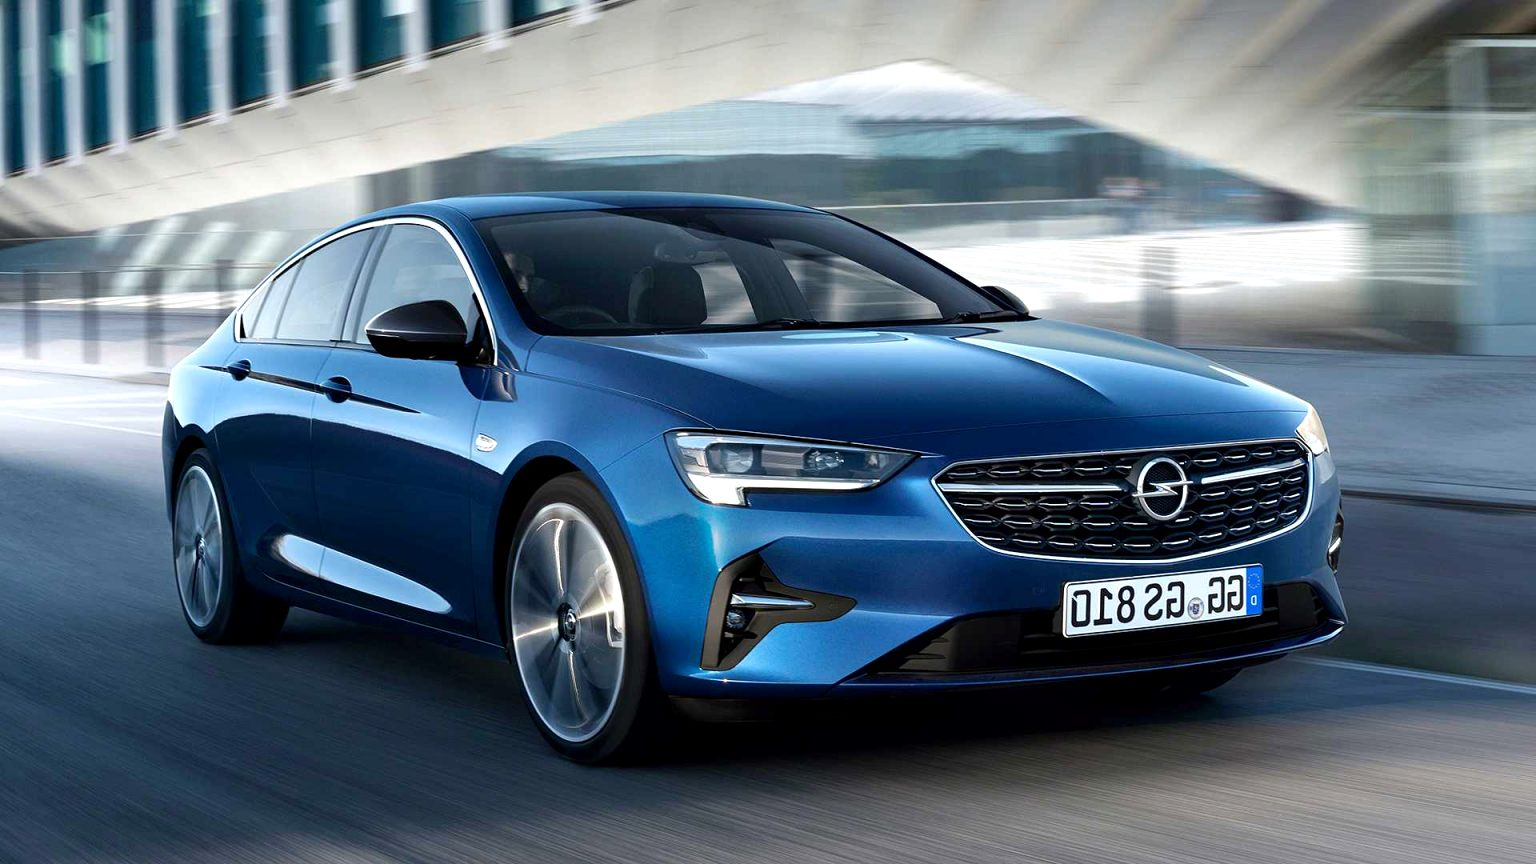 opel 2020 pret Picture